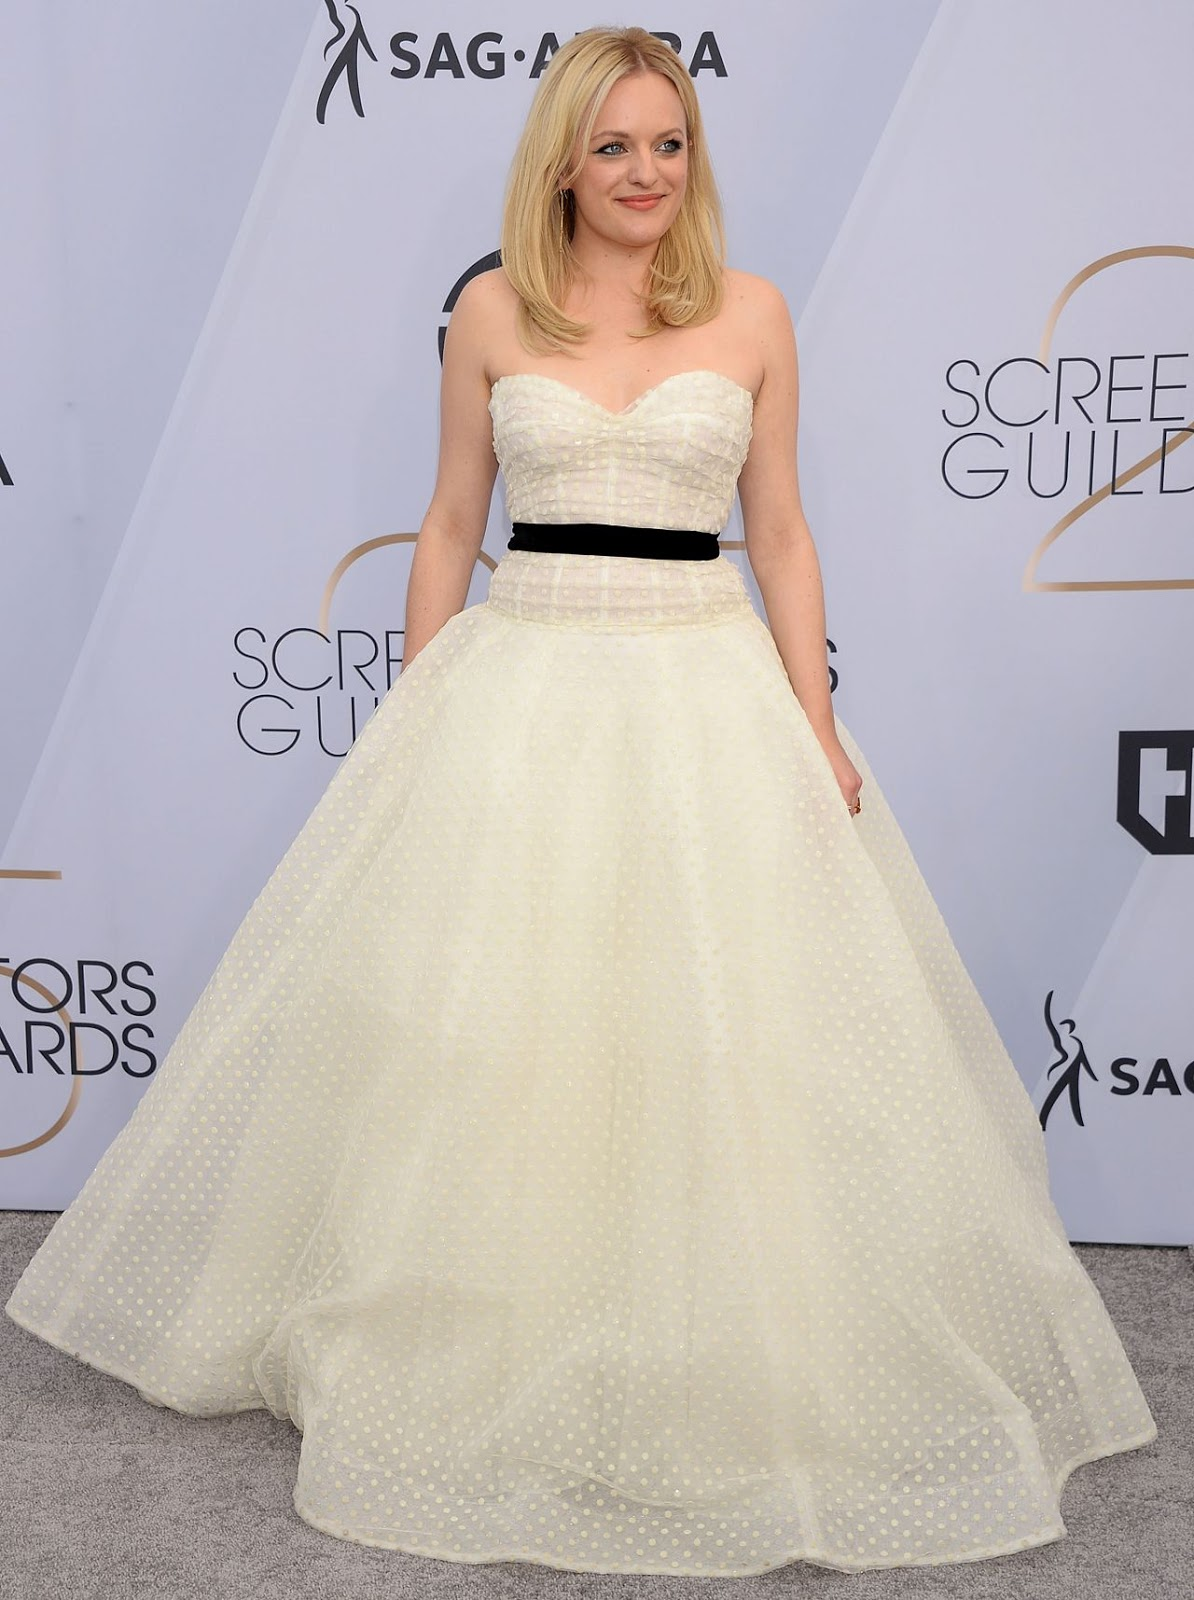 Elisabeth Moss Has a Princess Moment at SAG Awards 2019